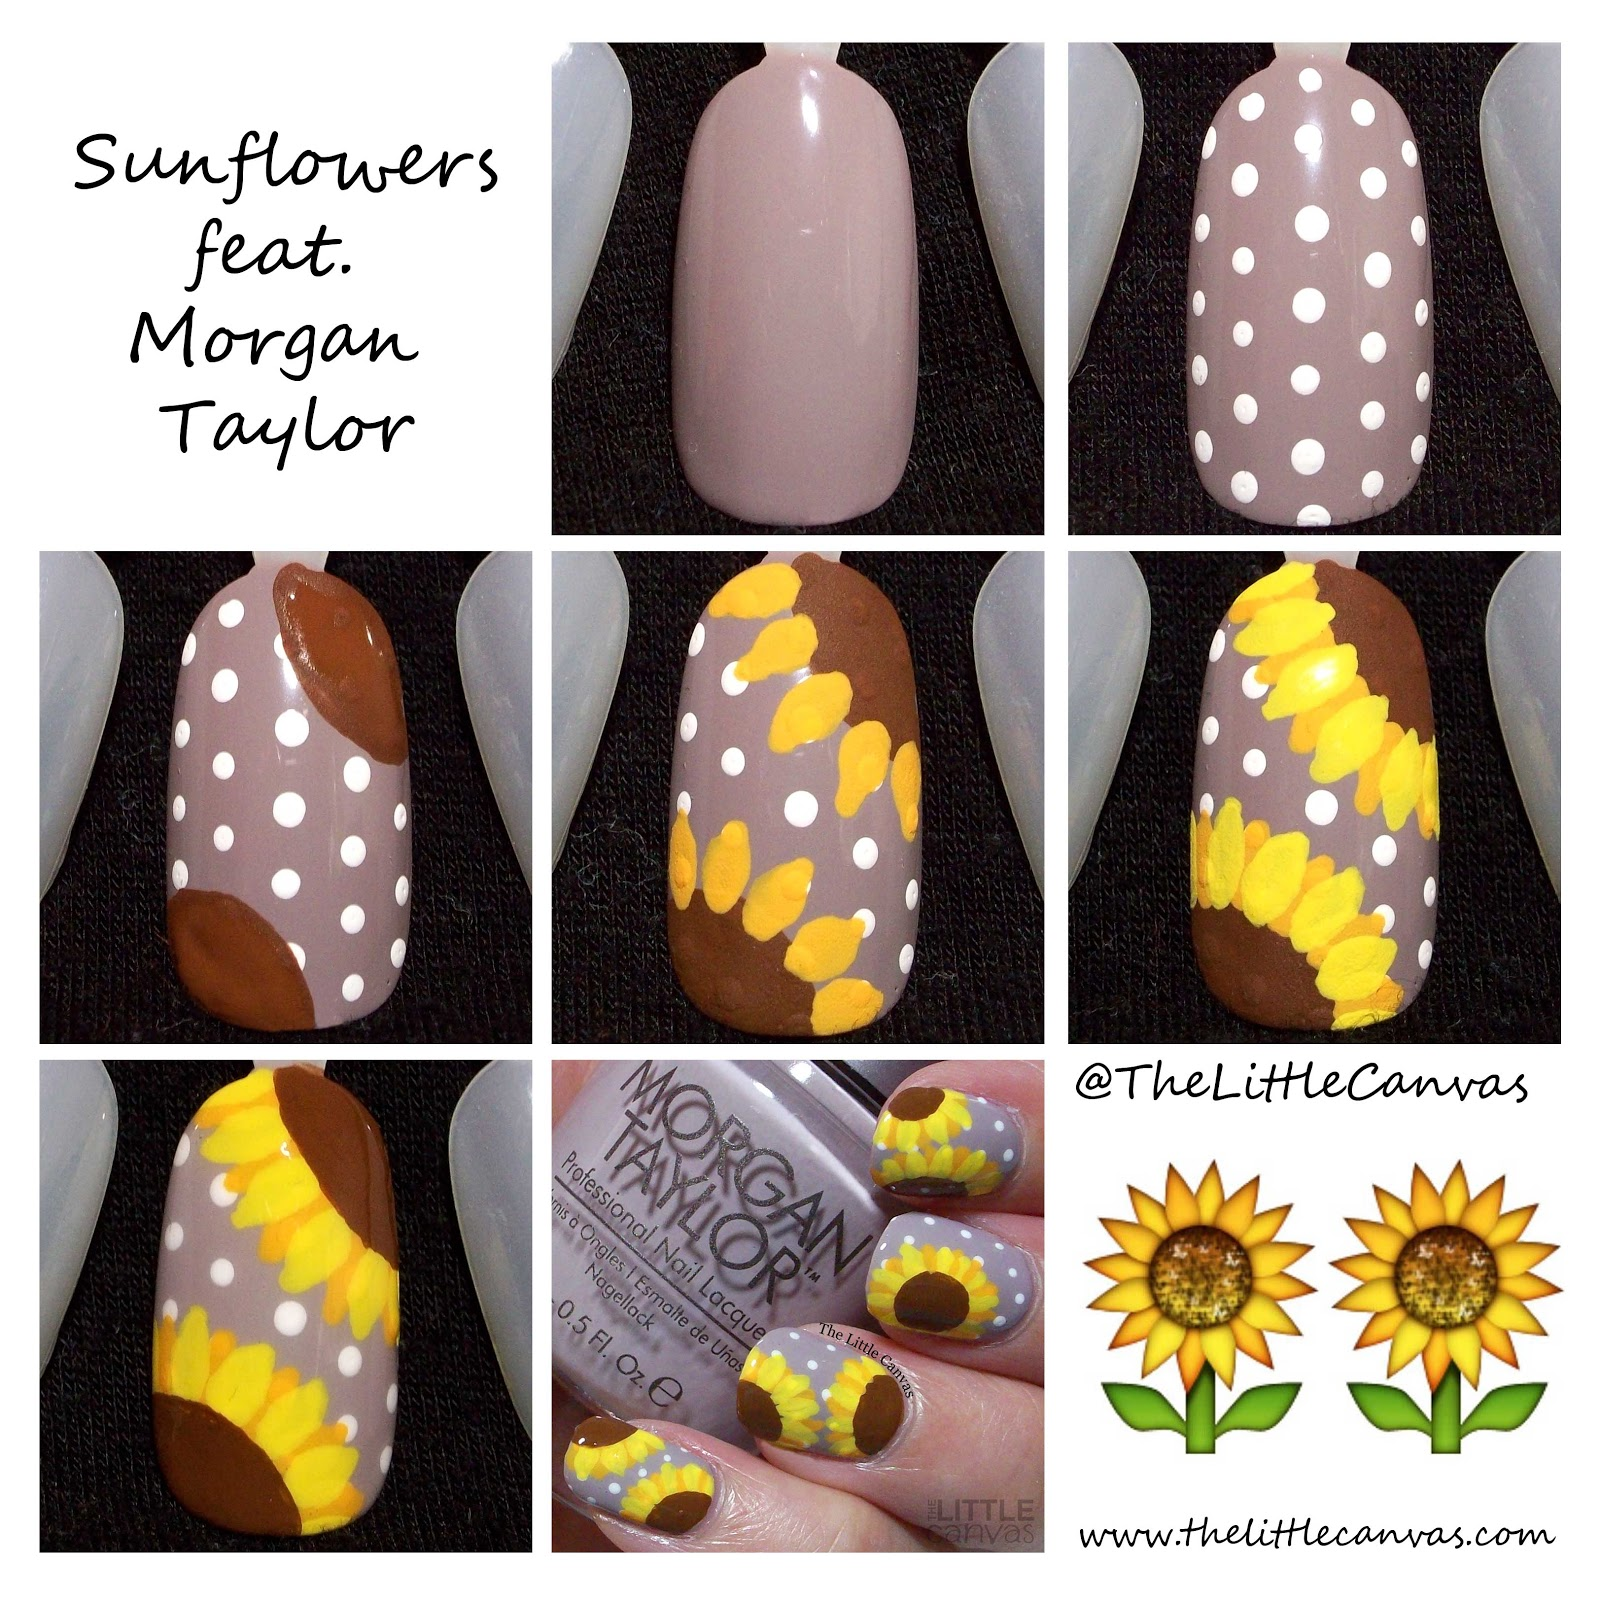 The One With the Sunflower Nail Art Tutorial - The Little Canvas